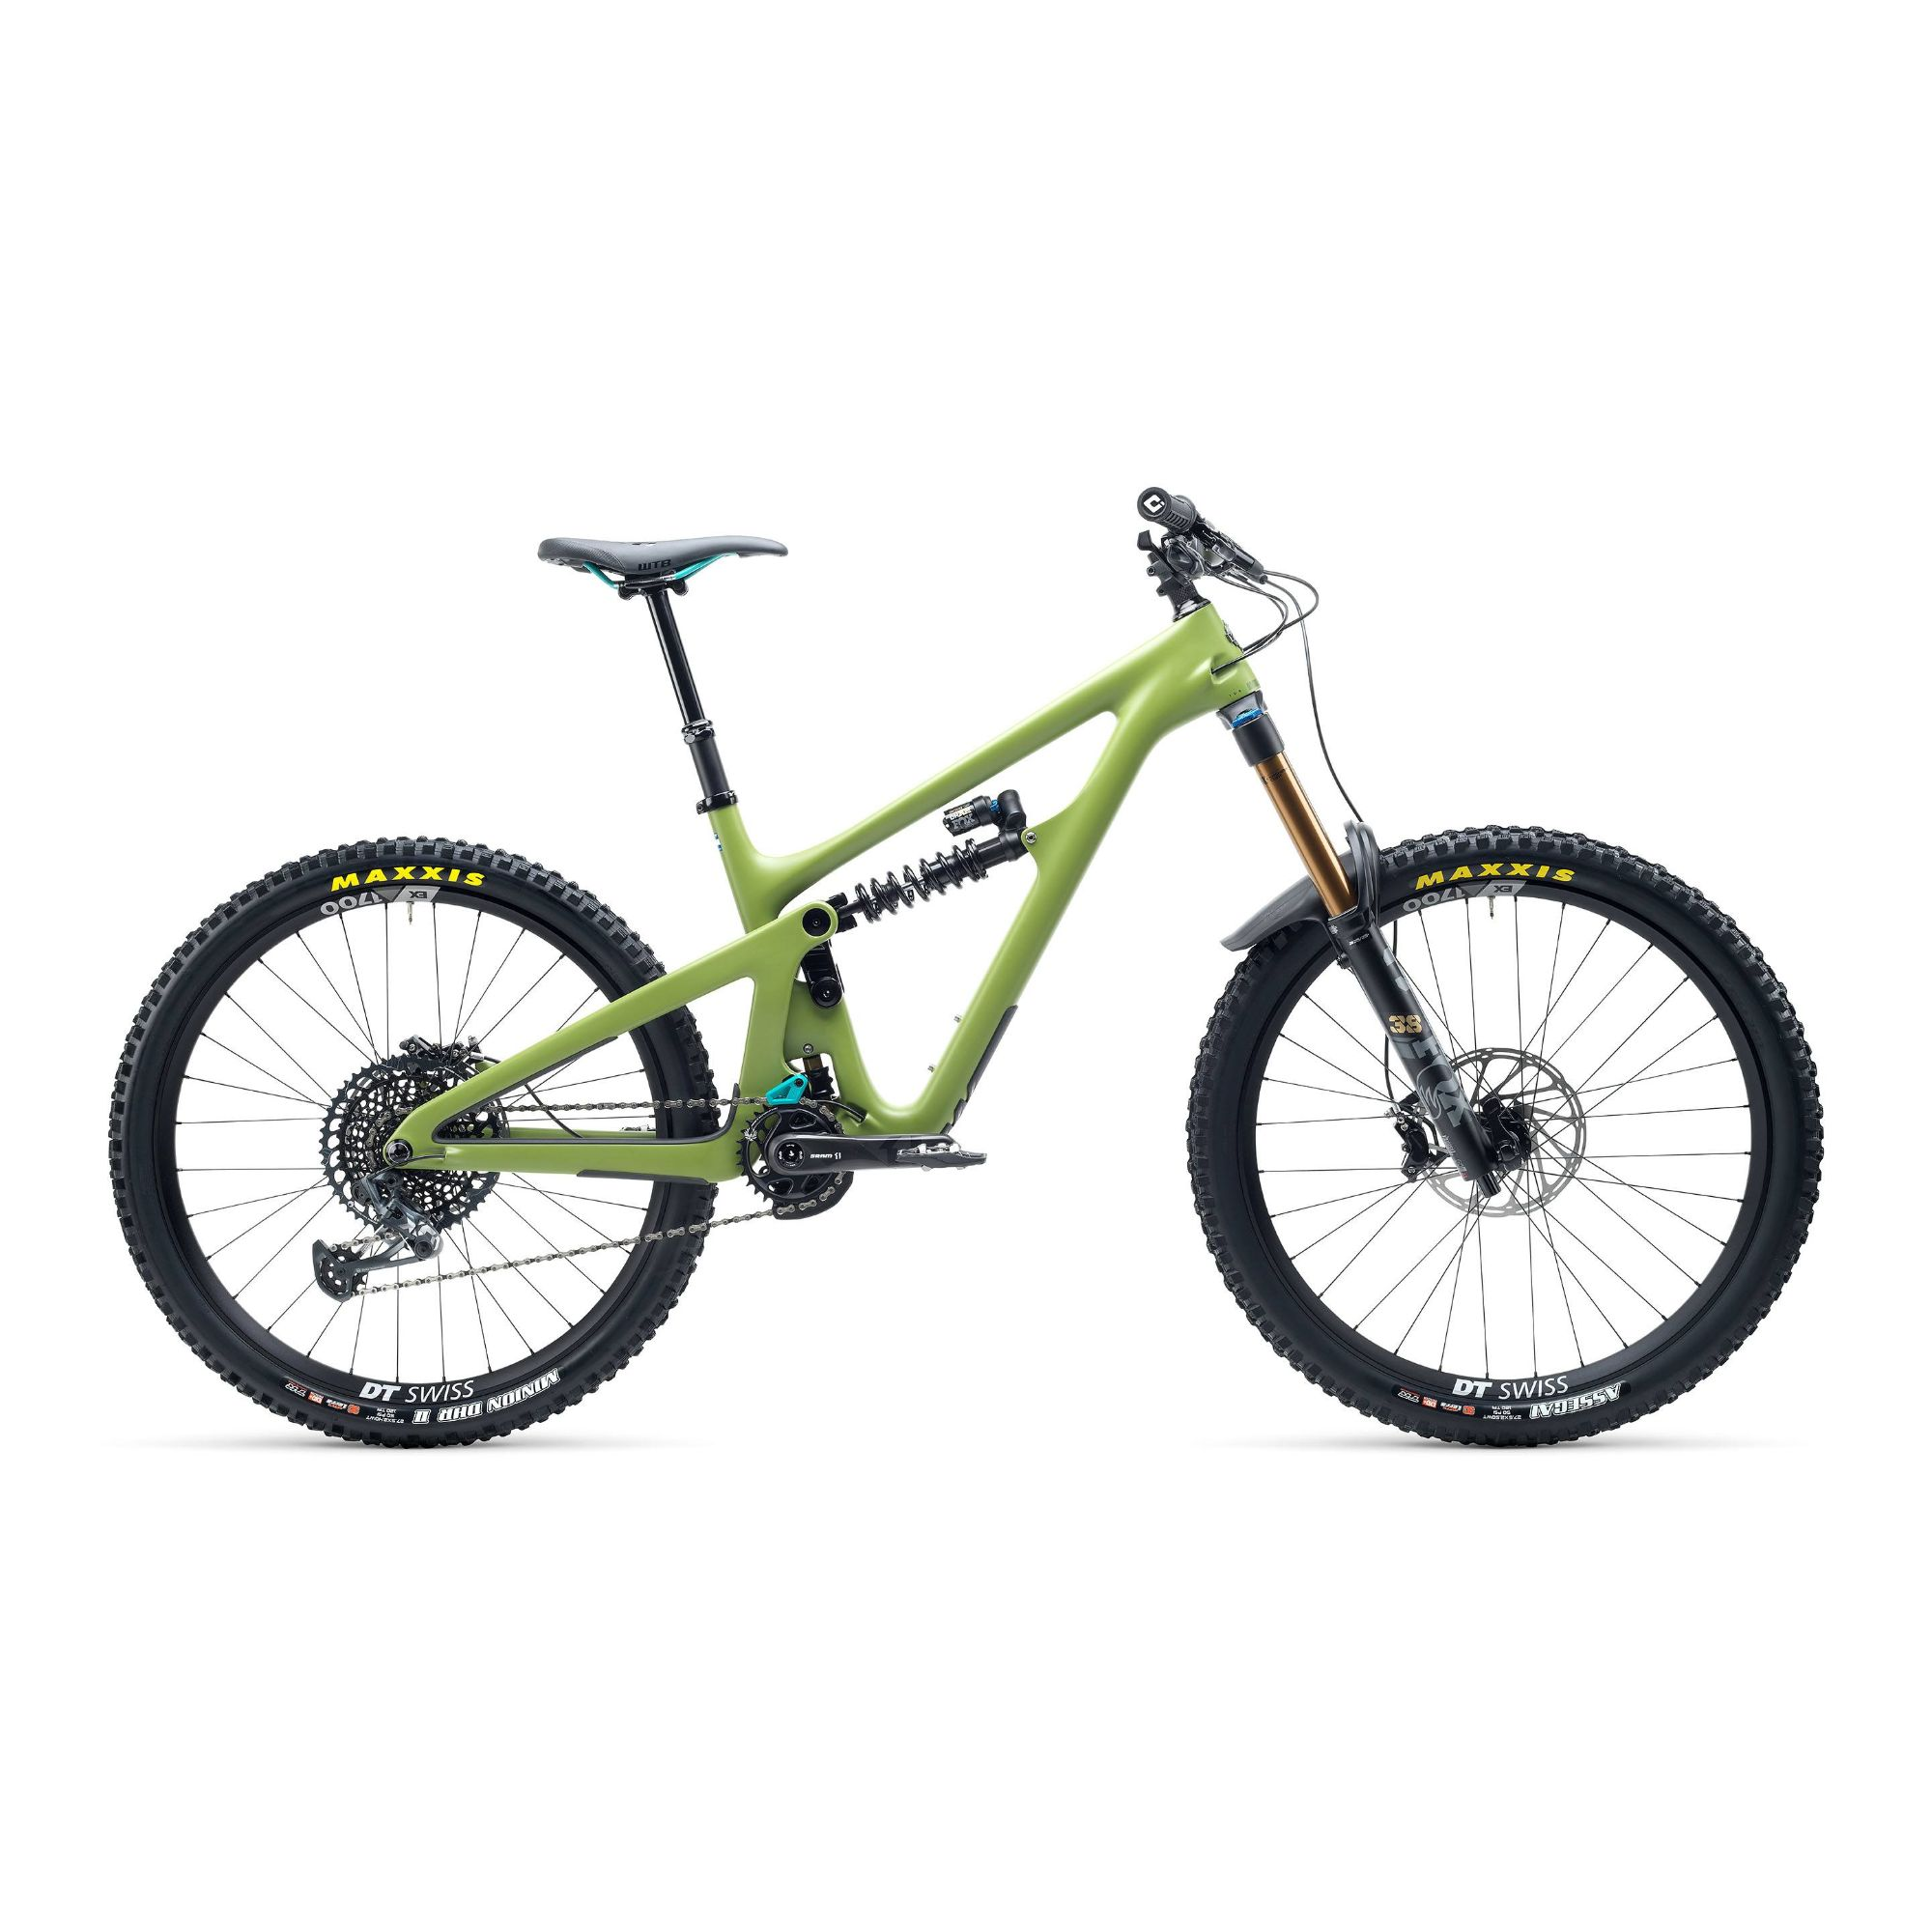 Yeti SB165 T Series T2 27.5 GX Carbon Mountain Bike 2021 Moss Green